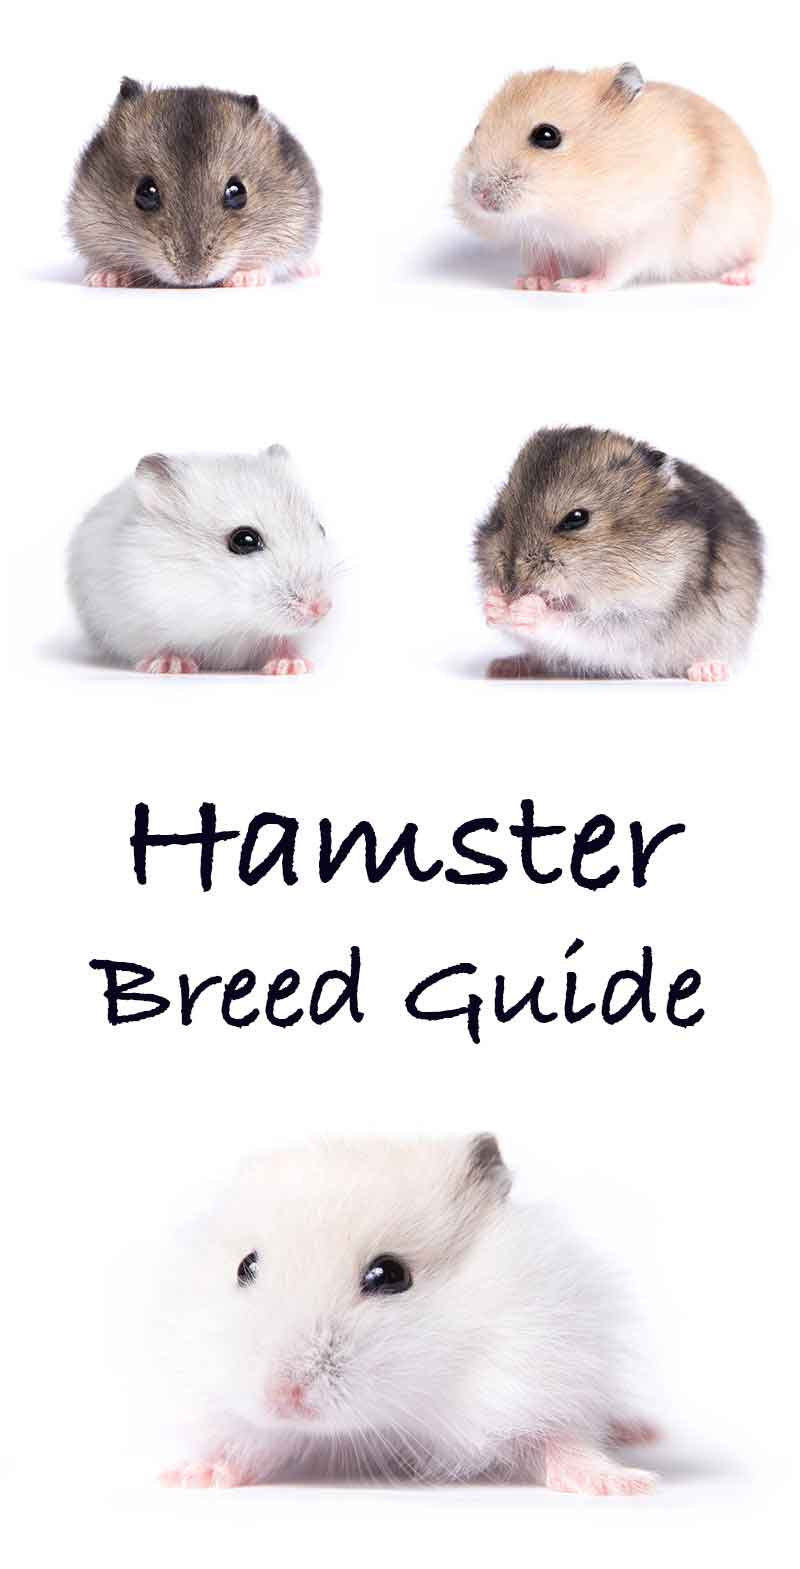 Hamster Breeds - Differences, Similarities, and Choosing the